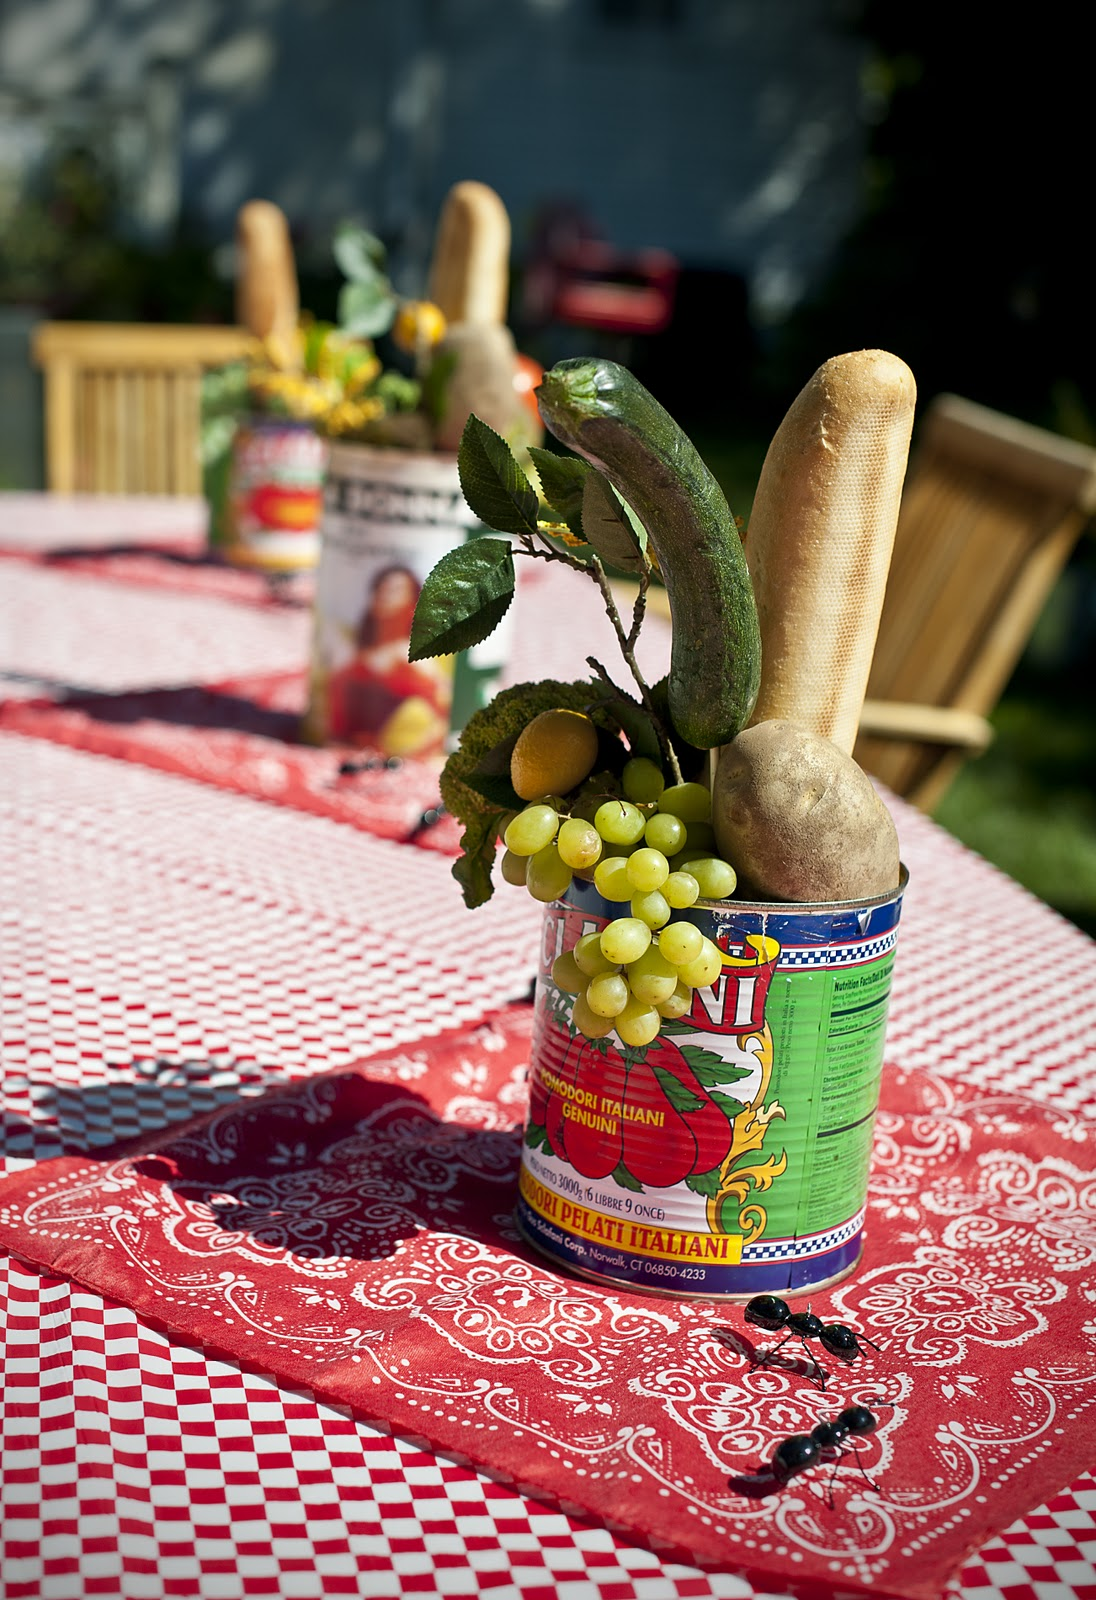 A party style picnic